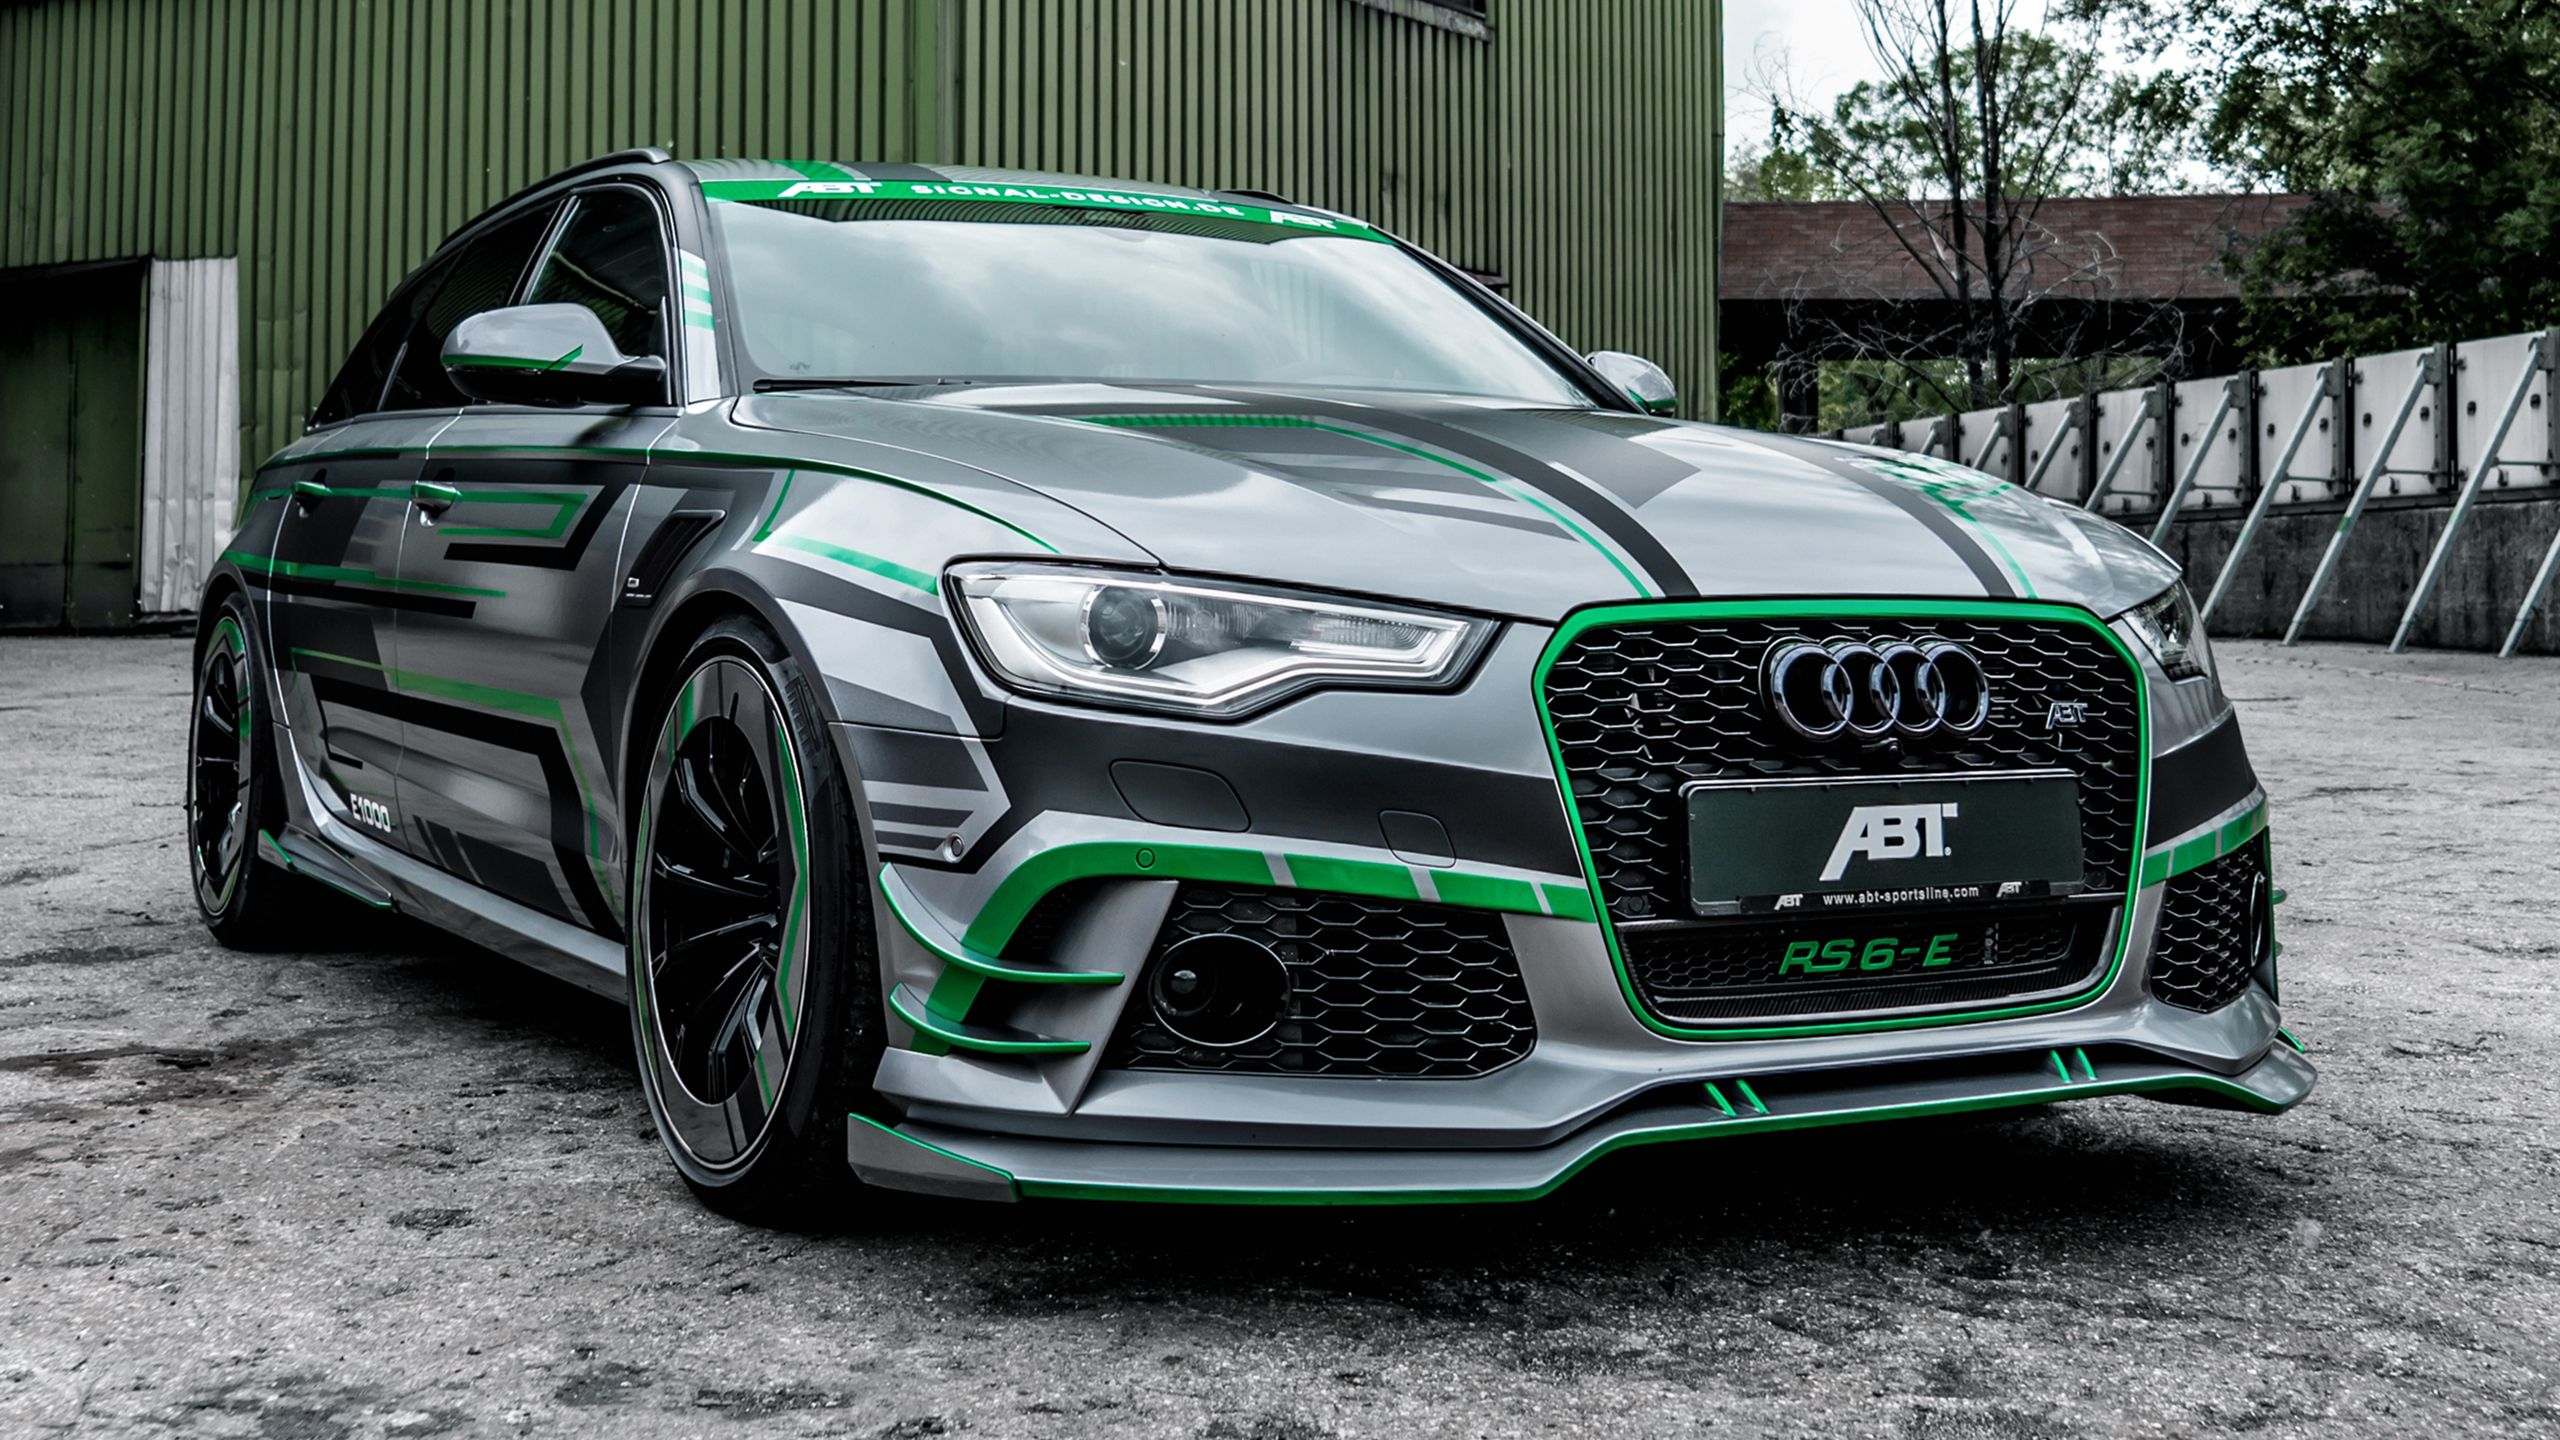 2018 ABTAudi Avant Concept RS6E Wallpapers Pinterest Audi